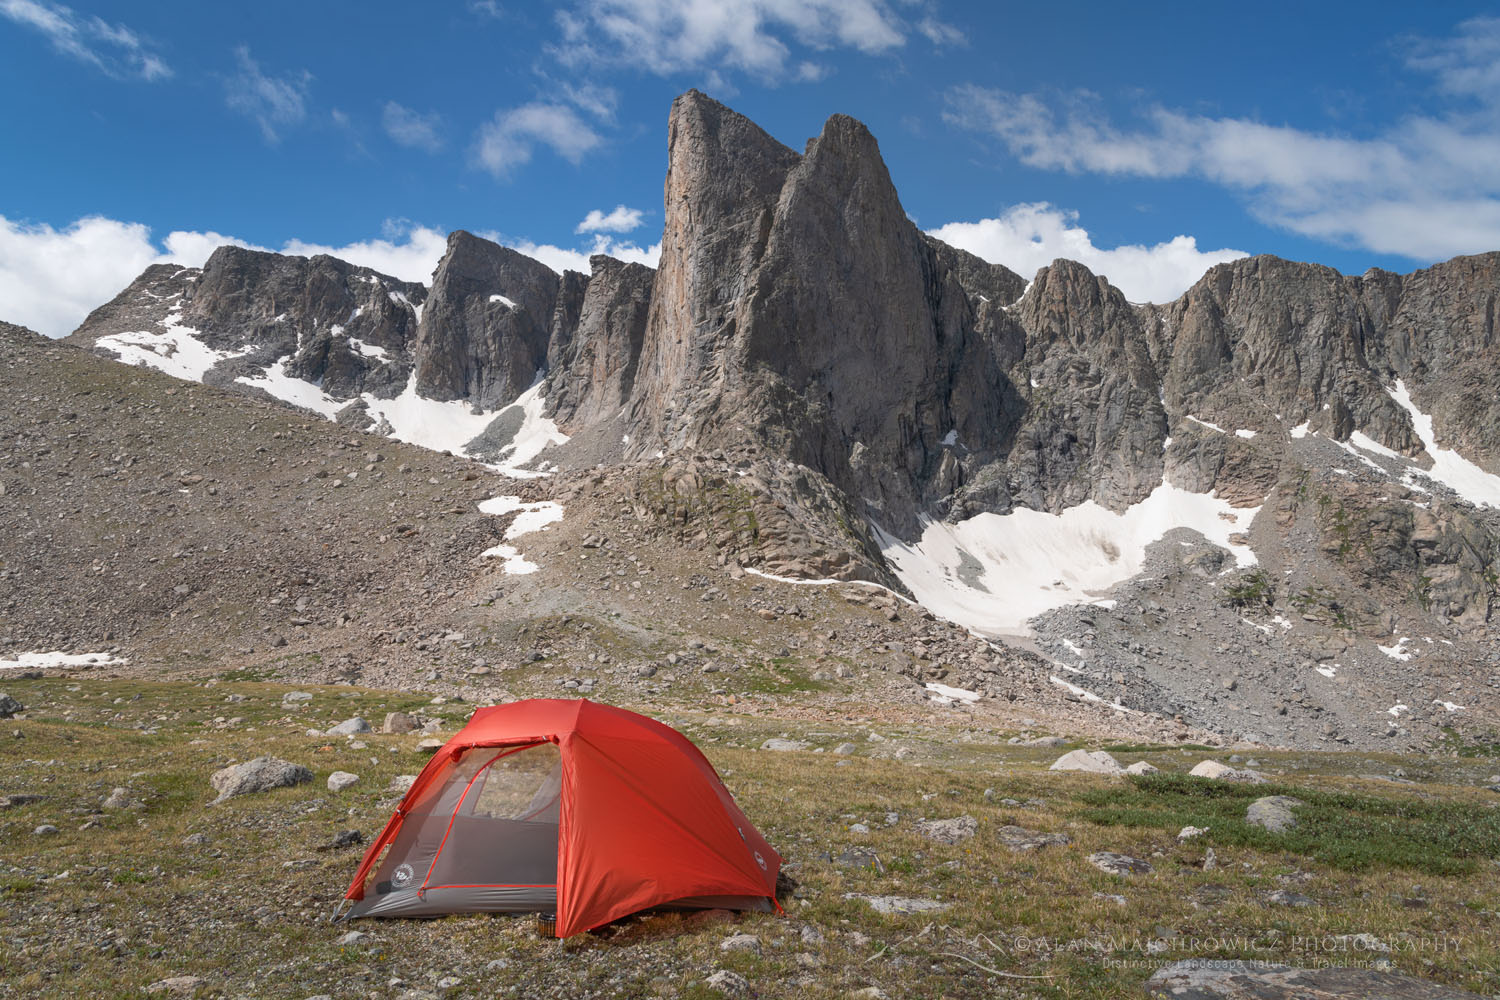 Backcountry camp below Pronghorn Peak. Bridger Wilderness. Wind River Range, Wyoming Central Wind River Range